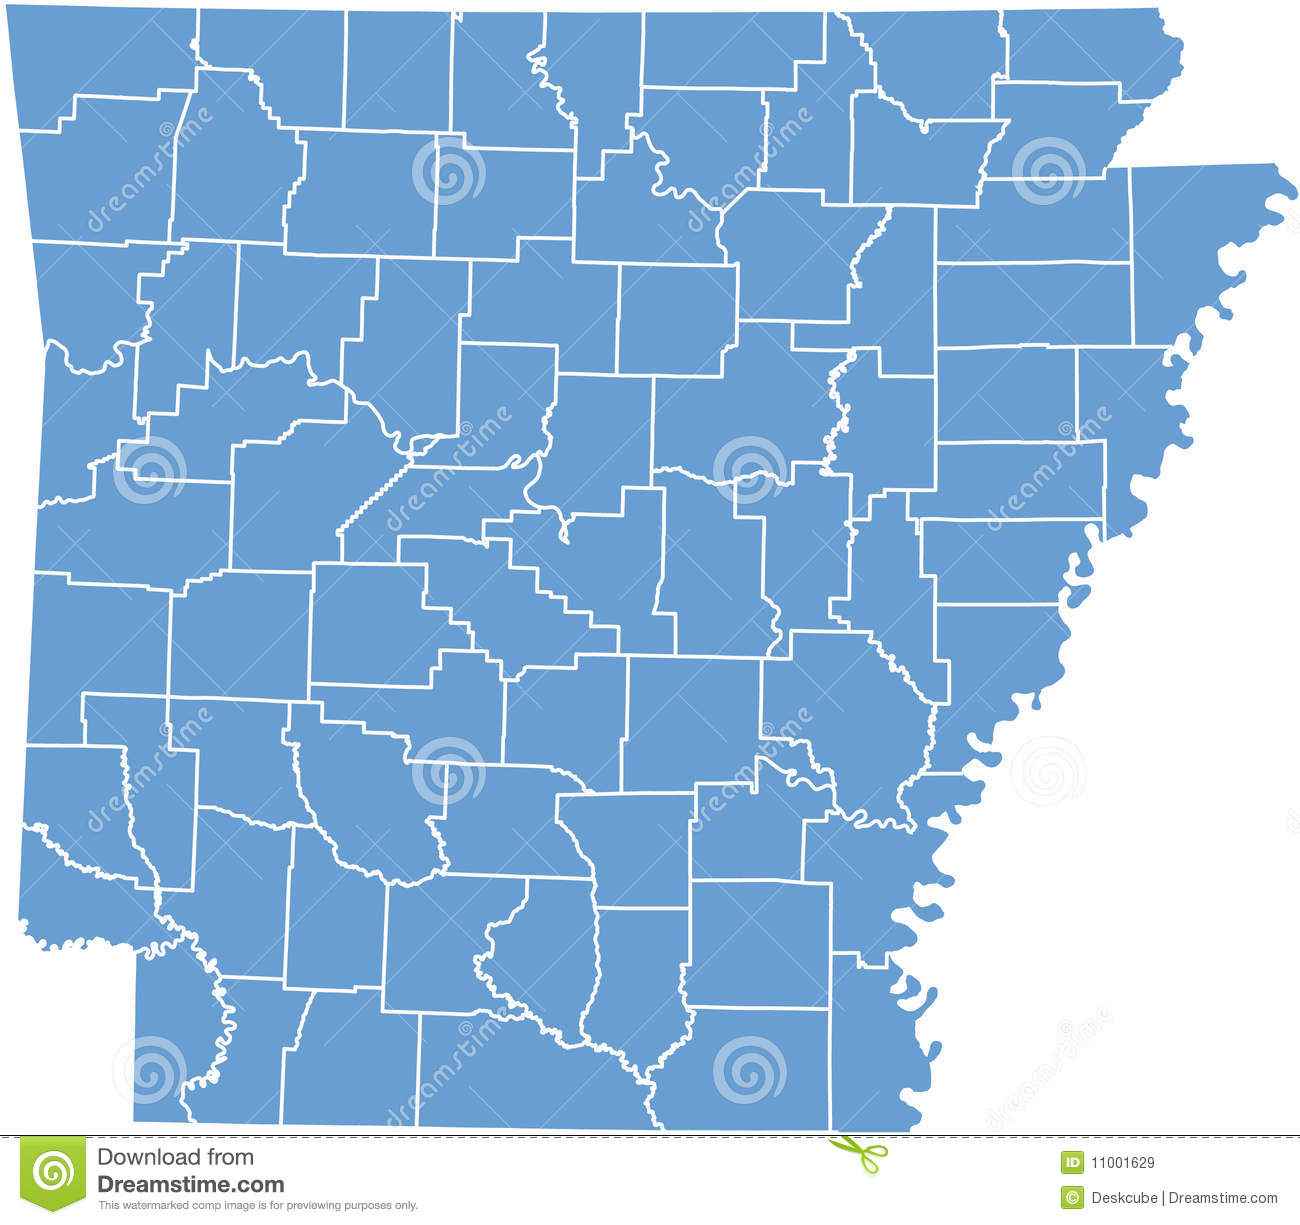 Arkansas State Map By Counties Stock Vector - Illustration of lines ...